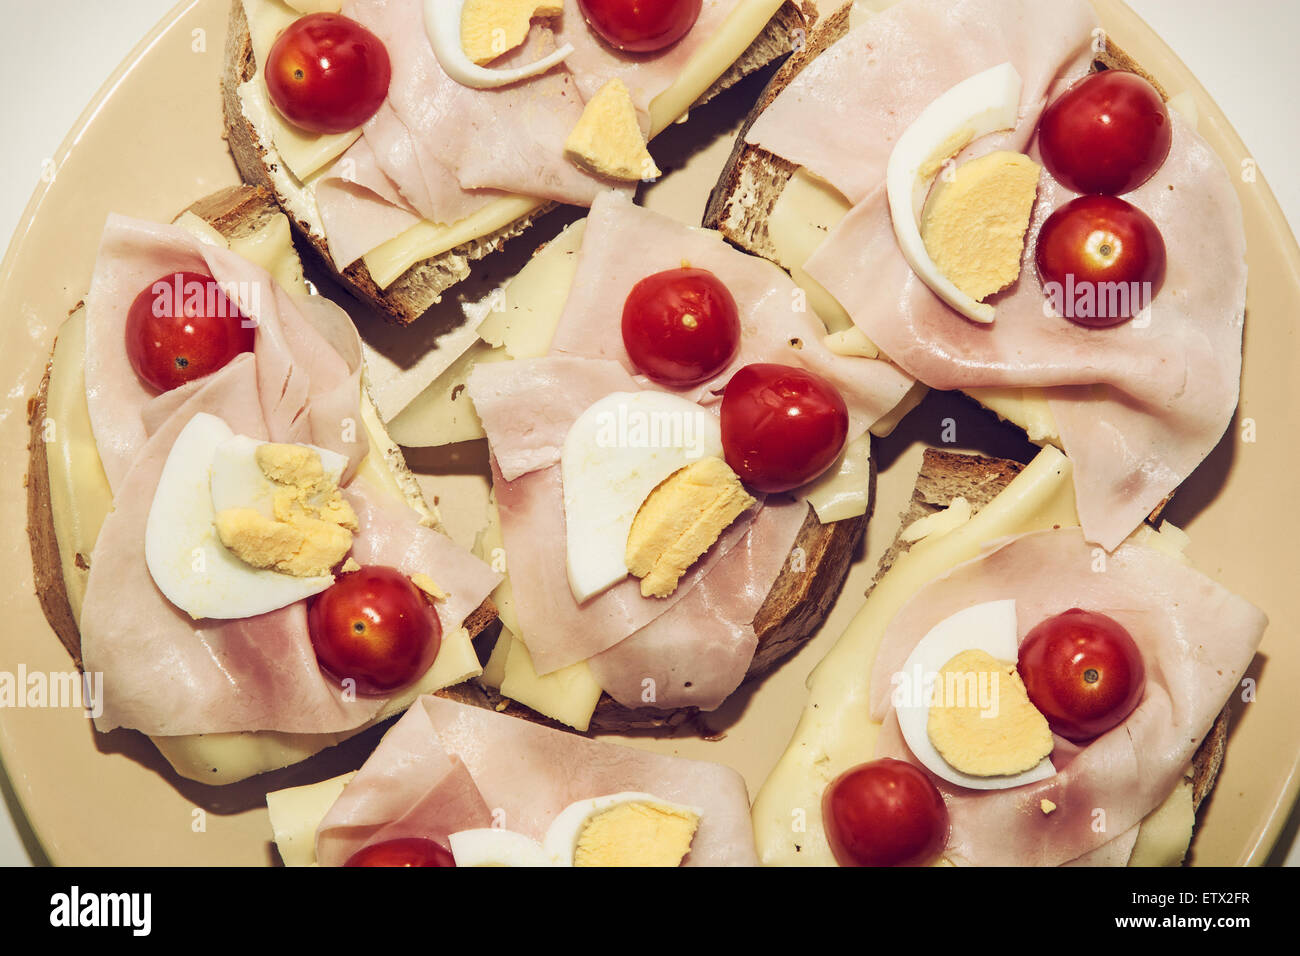 Tasty sandwiches with egg, cheese, ham and cherry tomatoes. Food and drink theme. Stock Photo